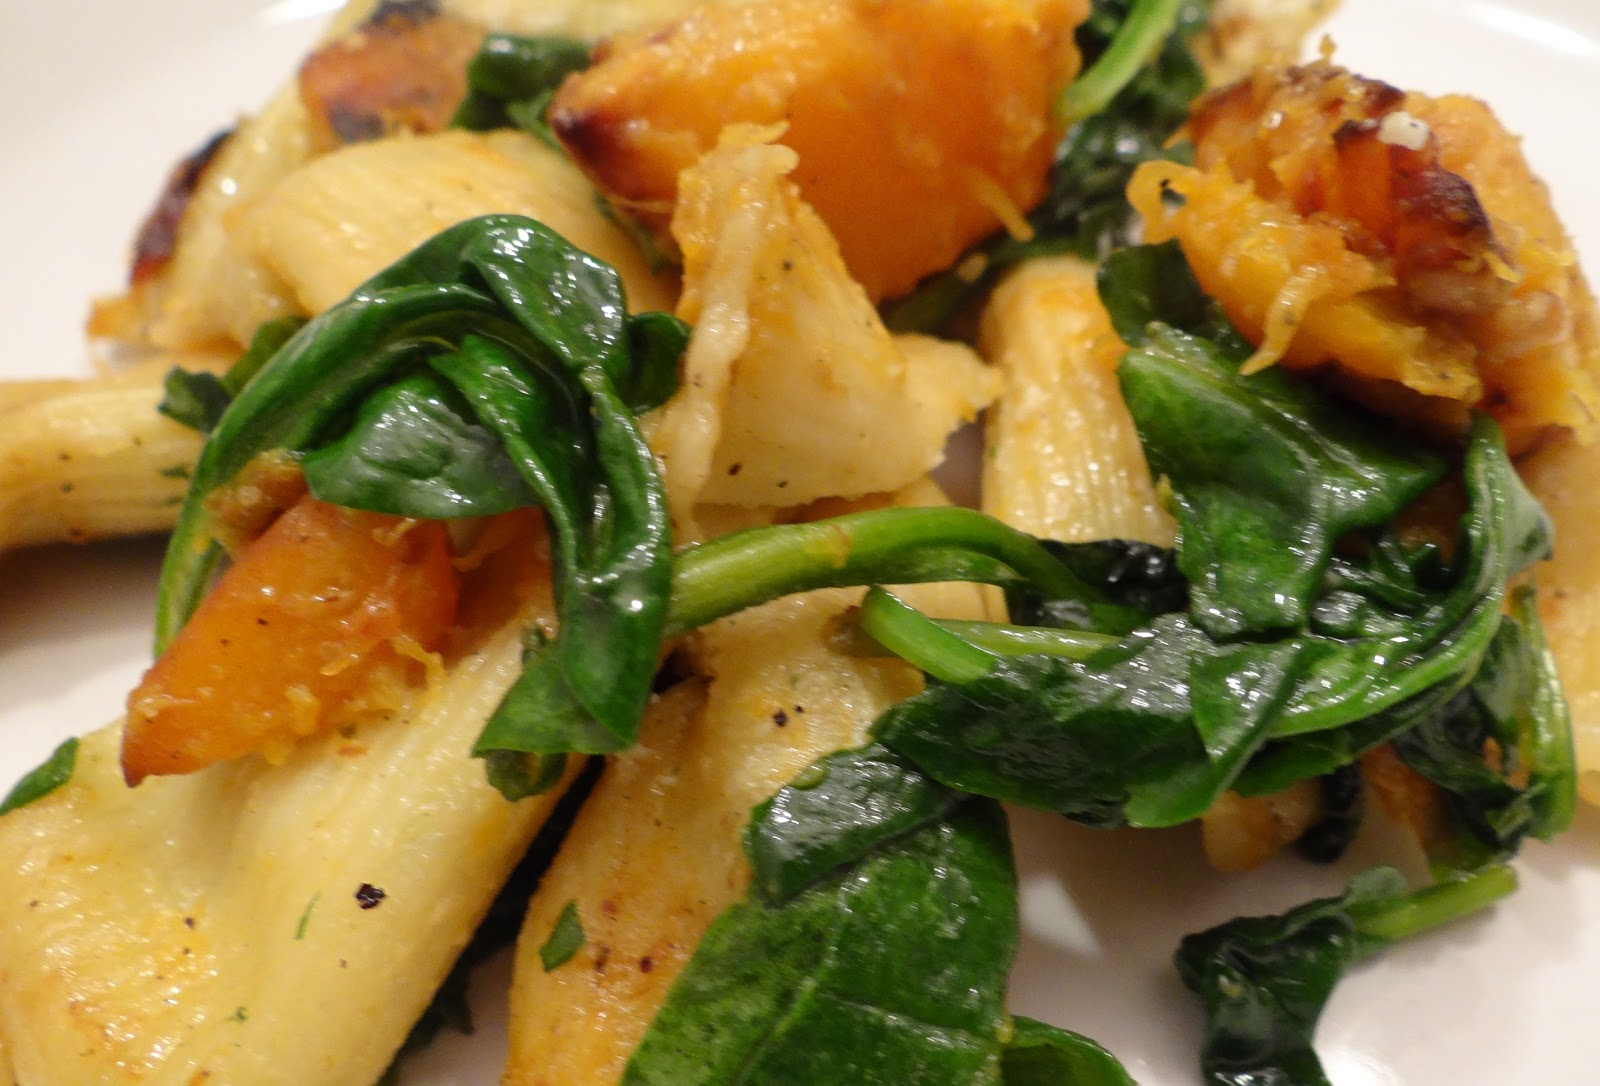 ... spinach and ricotta stuffed rigatoni or any stuffed rigatoni or